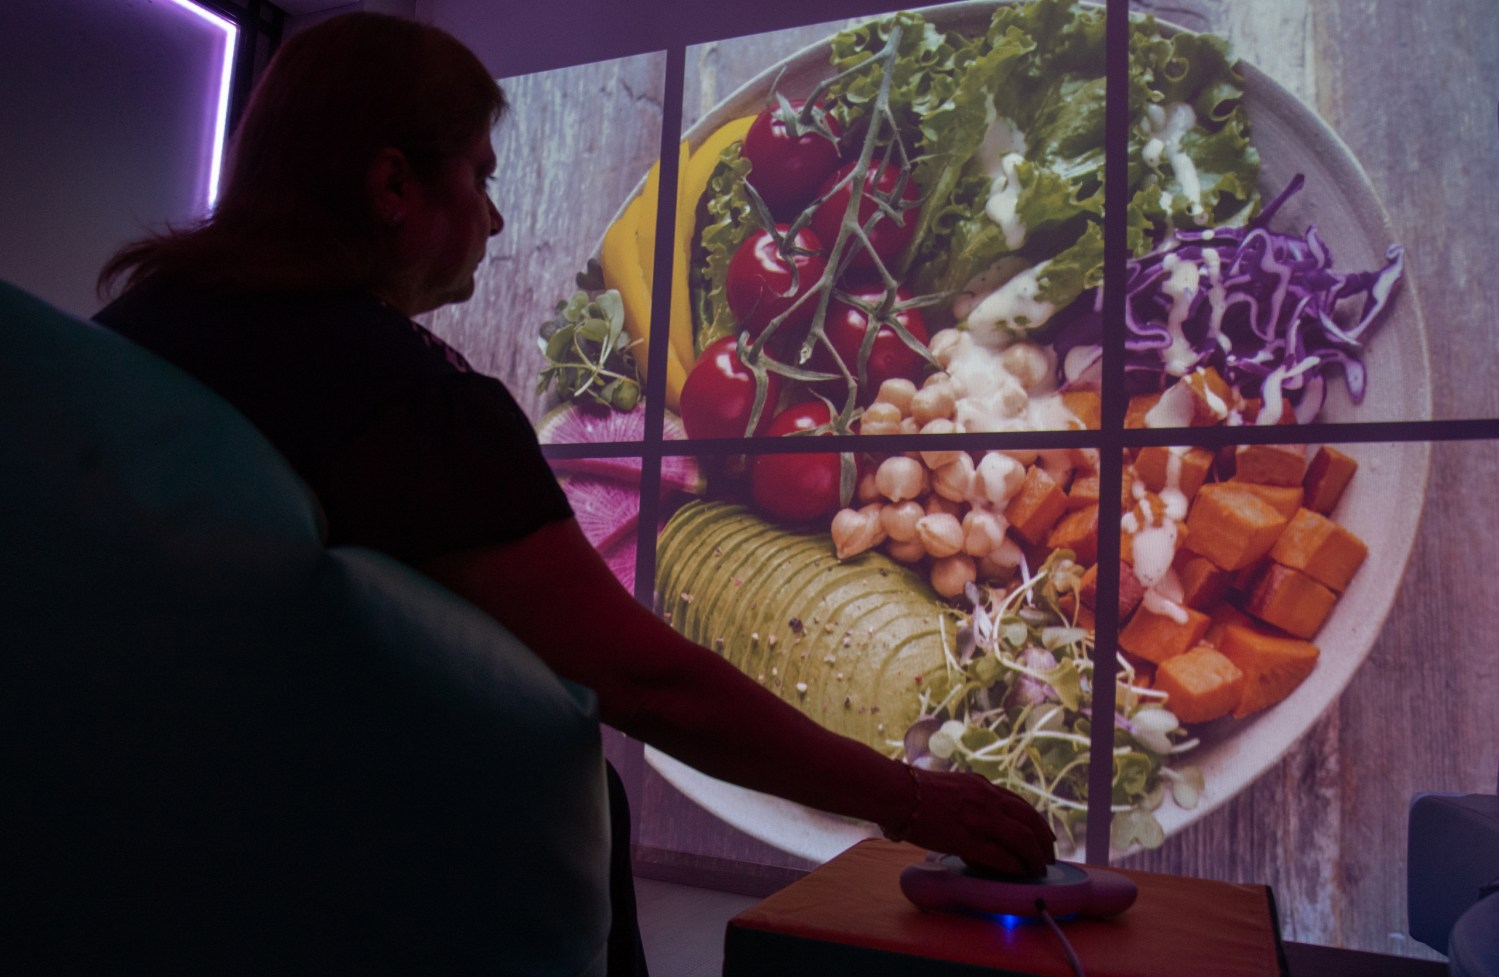 Boosting cognition in the elderly through sensory rooms